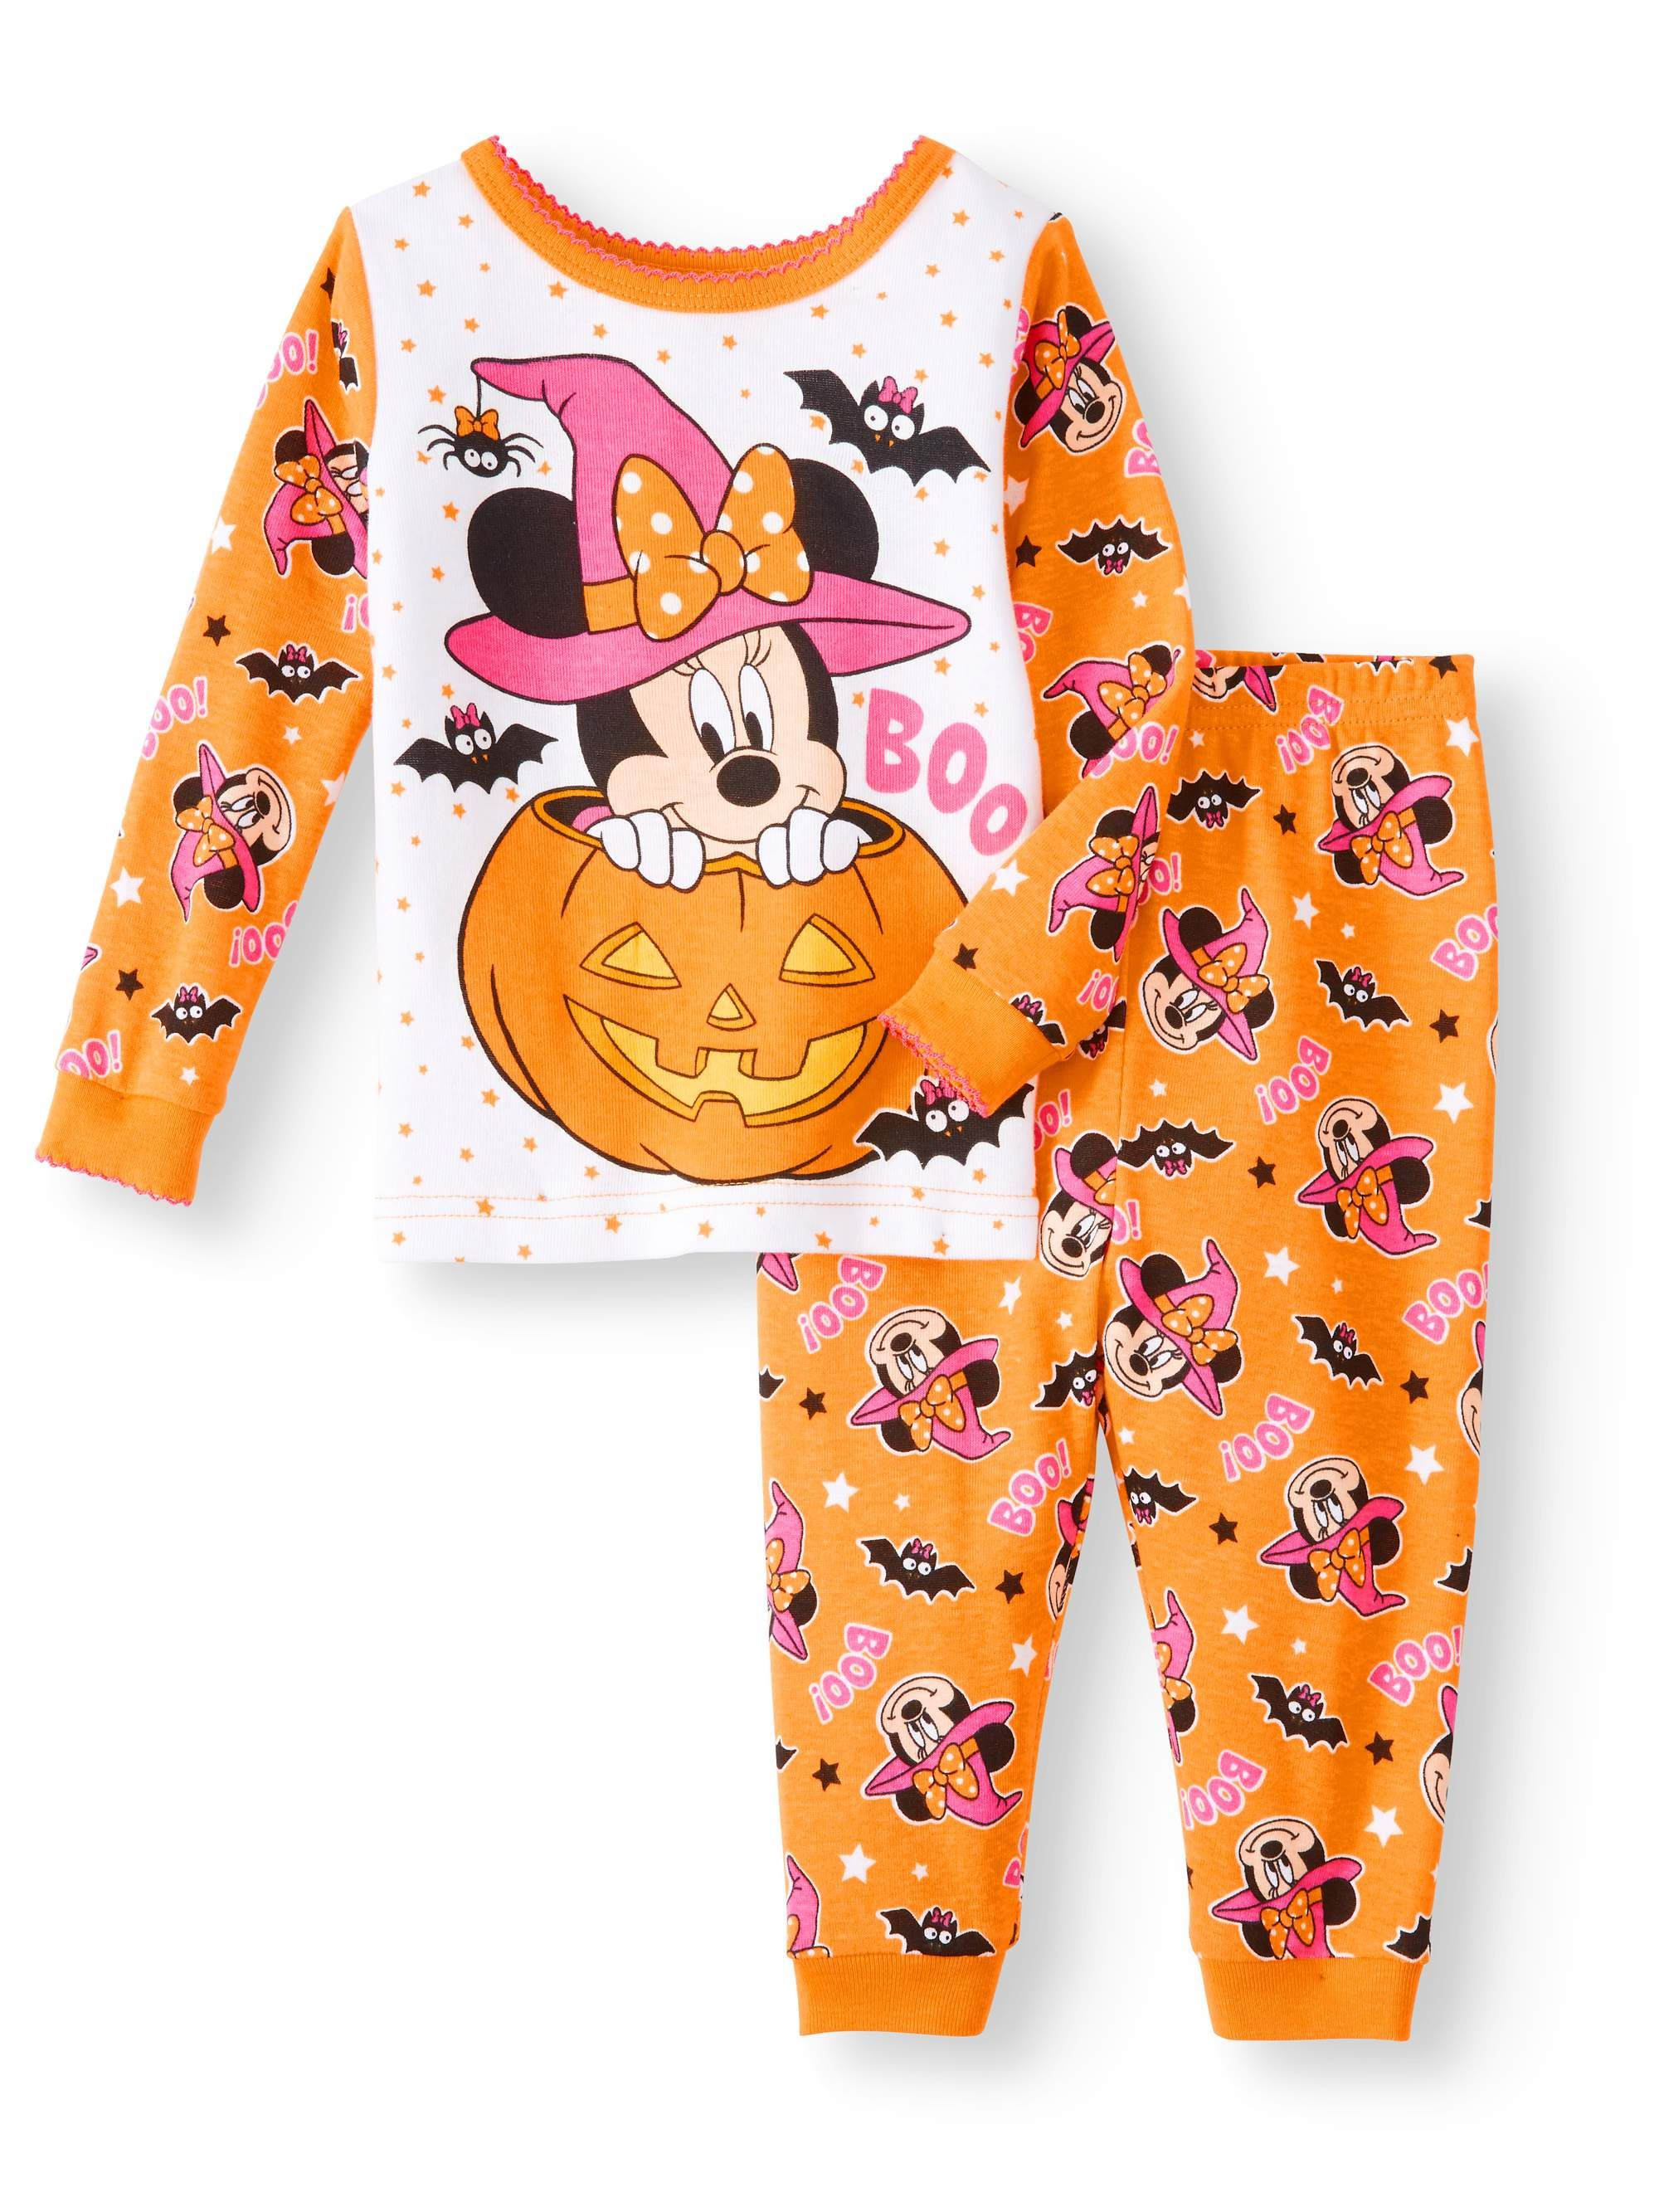 halloween glow-in-the-dark cotton tight fit pajamas, 2-piece set